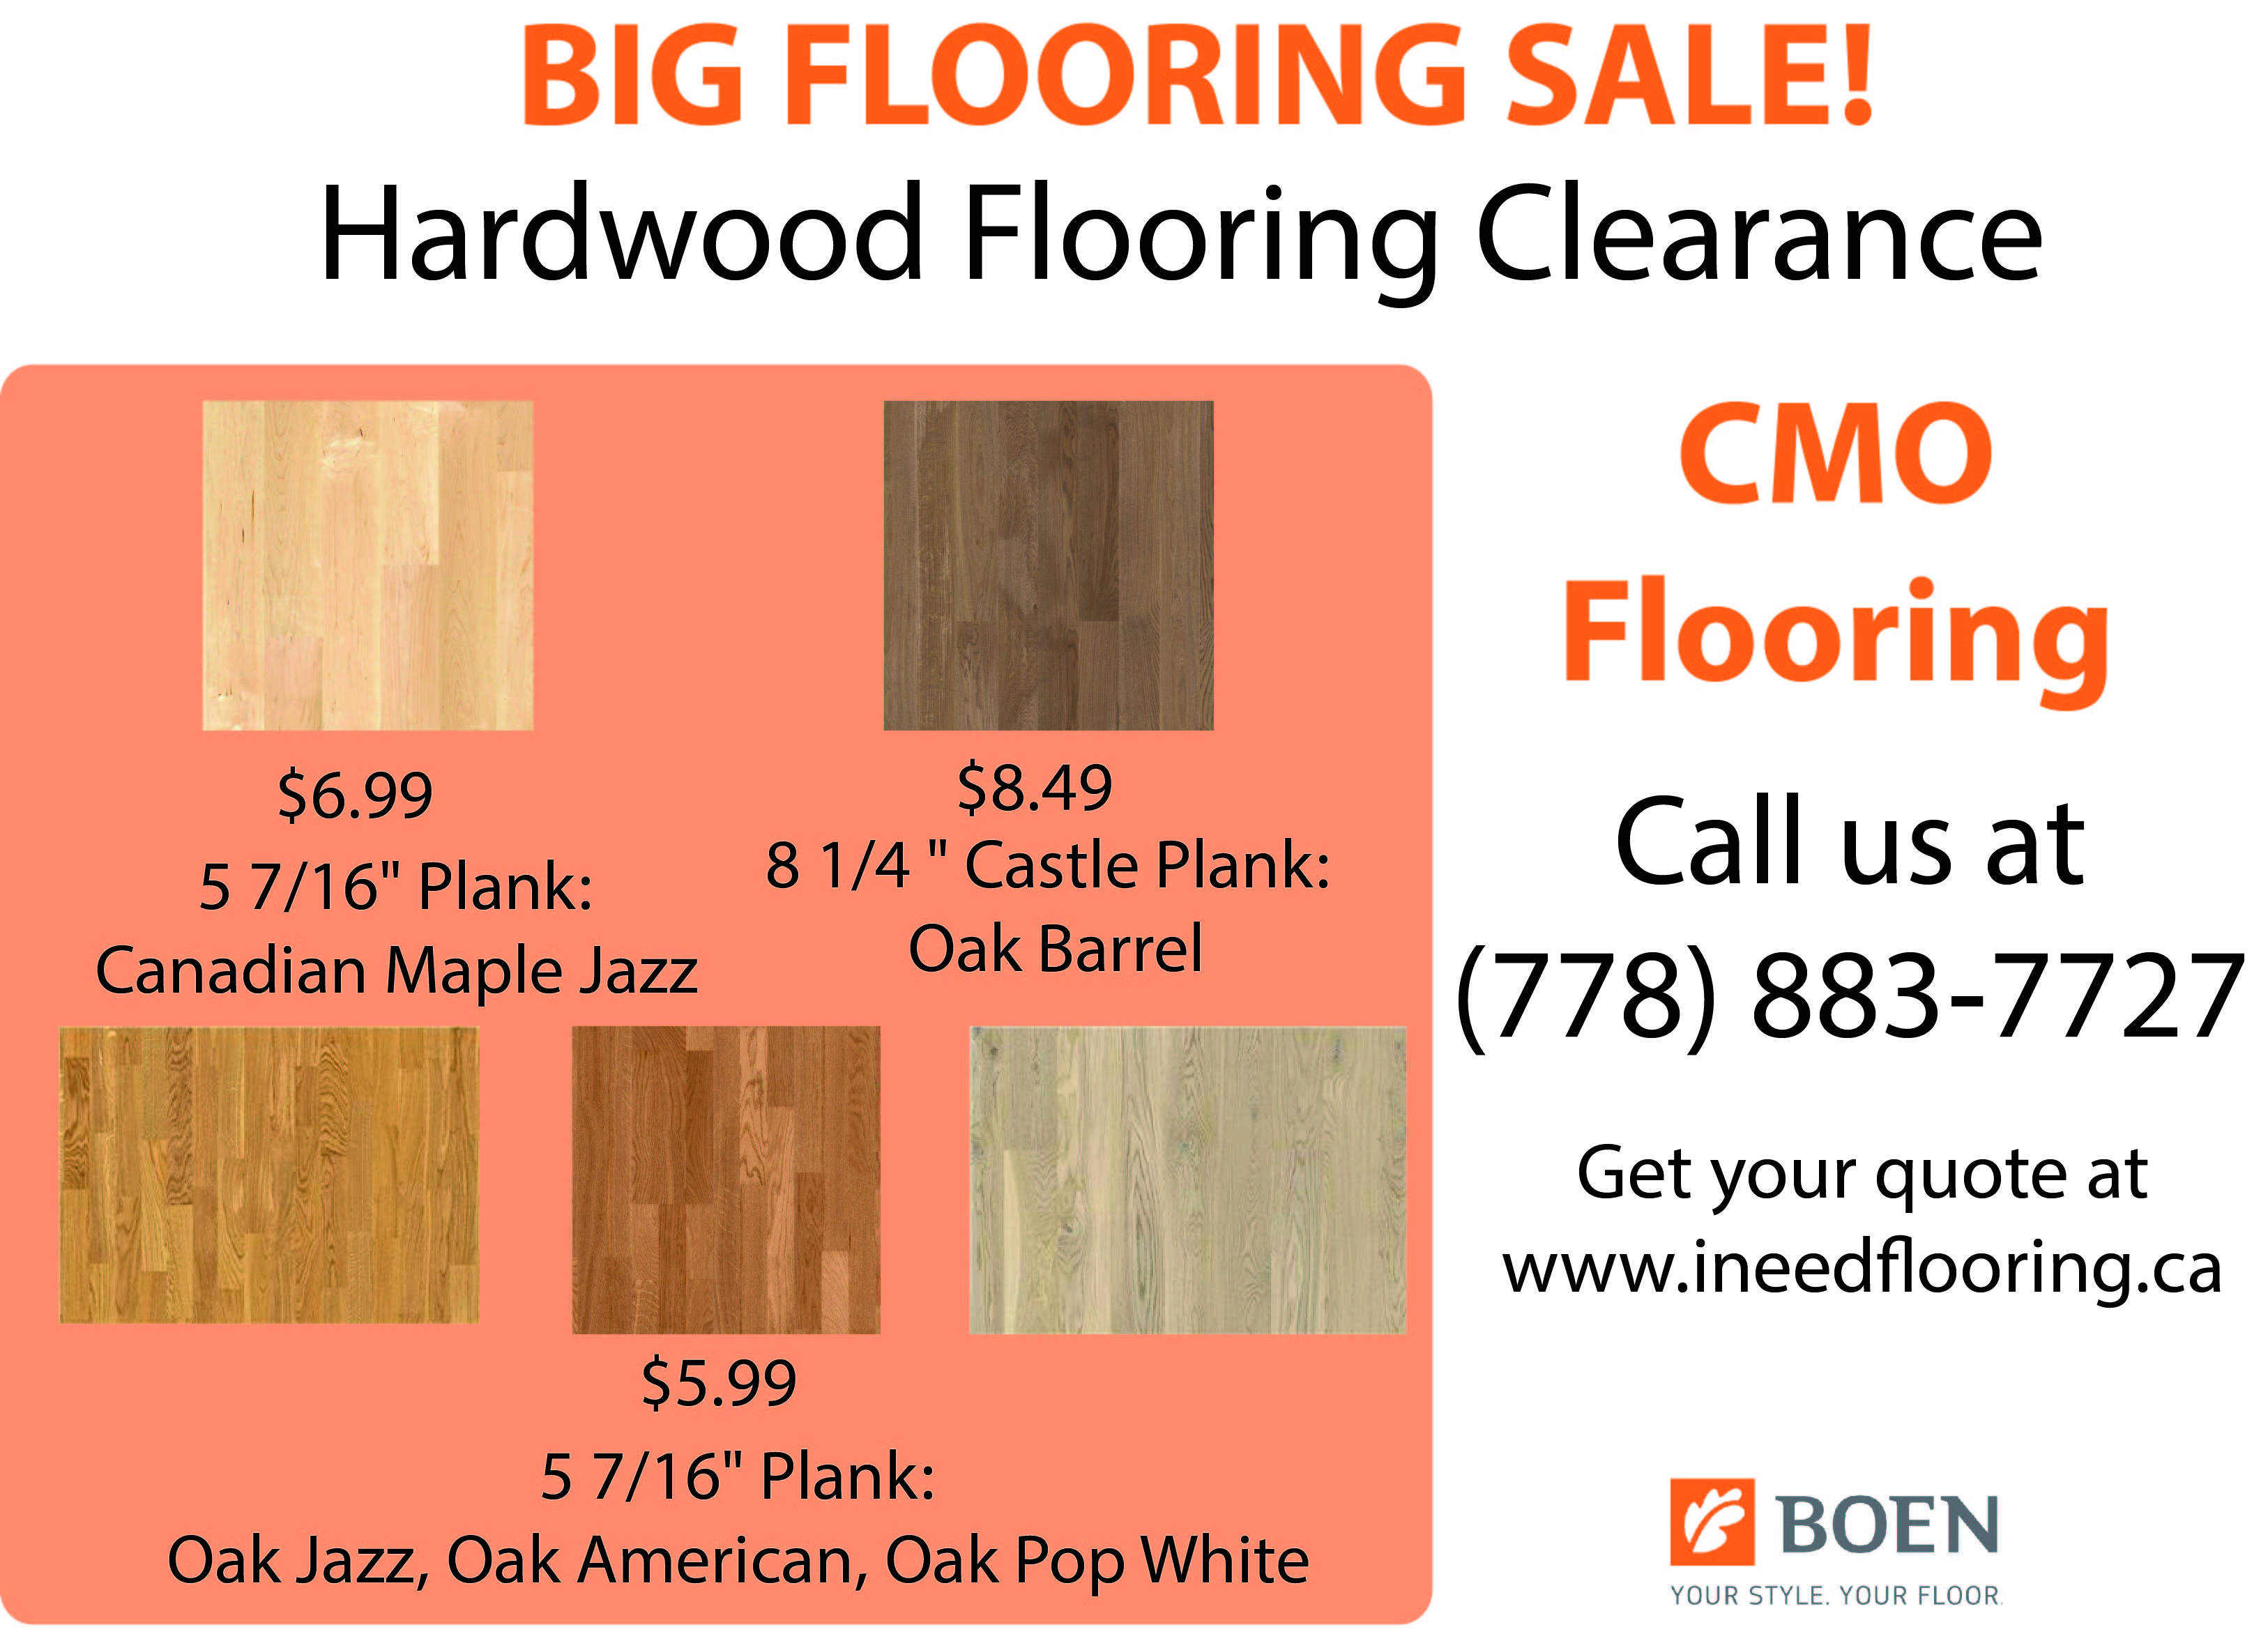 boen-hardwood-flooring-promotion-clearance-sale-canadian-maple-jazz-plank-castle-oak-barrel-oak-jazz, american, oak pop white-CMO-Floors-Vancouver